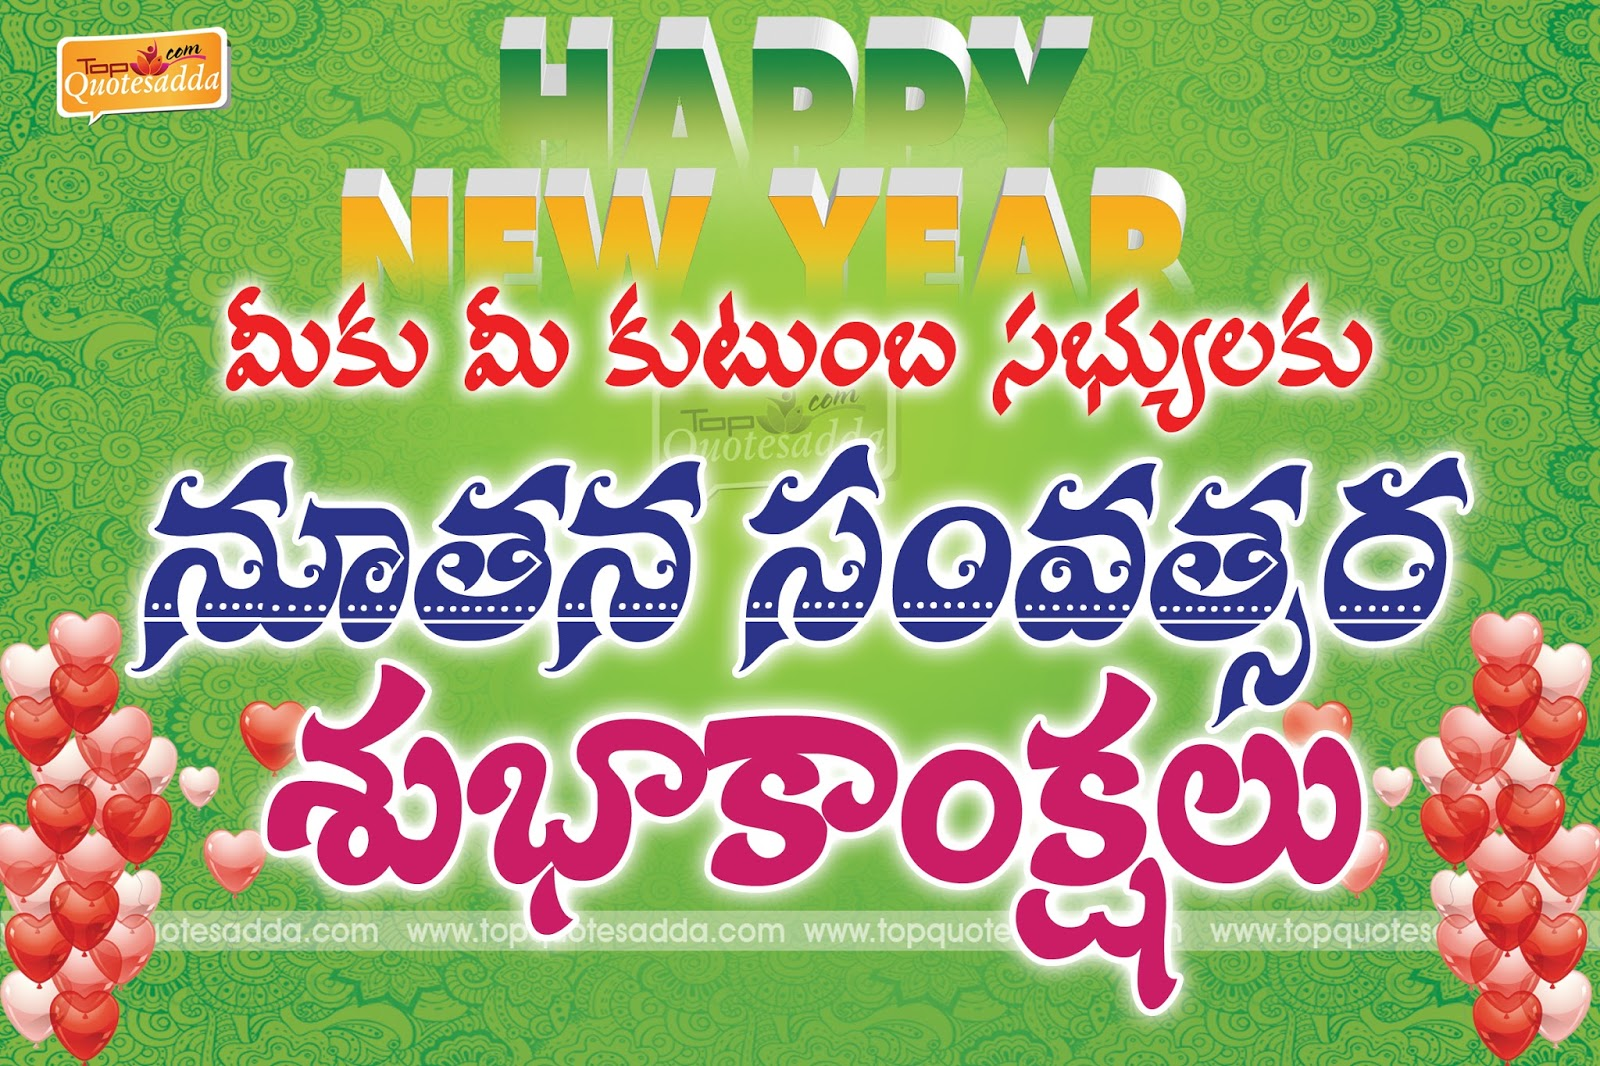 Happy new year telugu greeting cards and quotes topquotesadda happy new year telugu wishes quotes and greetings m4hsunfo